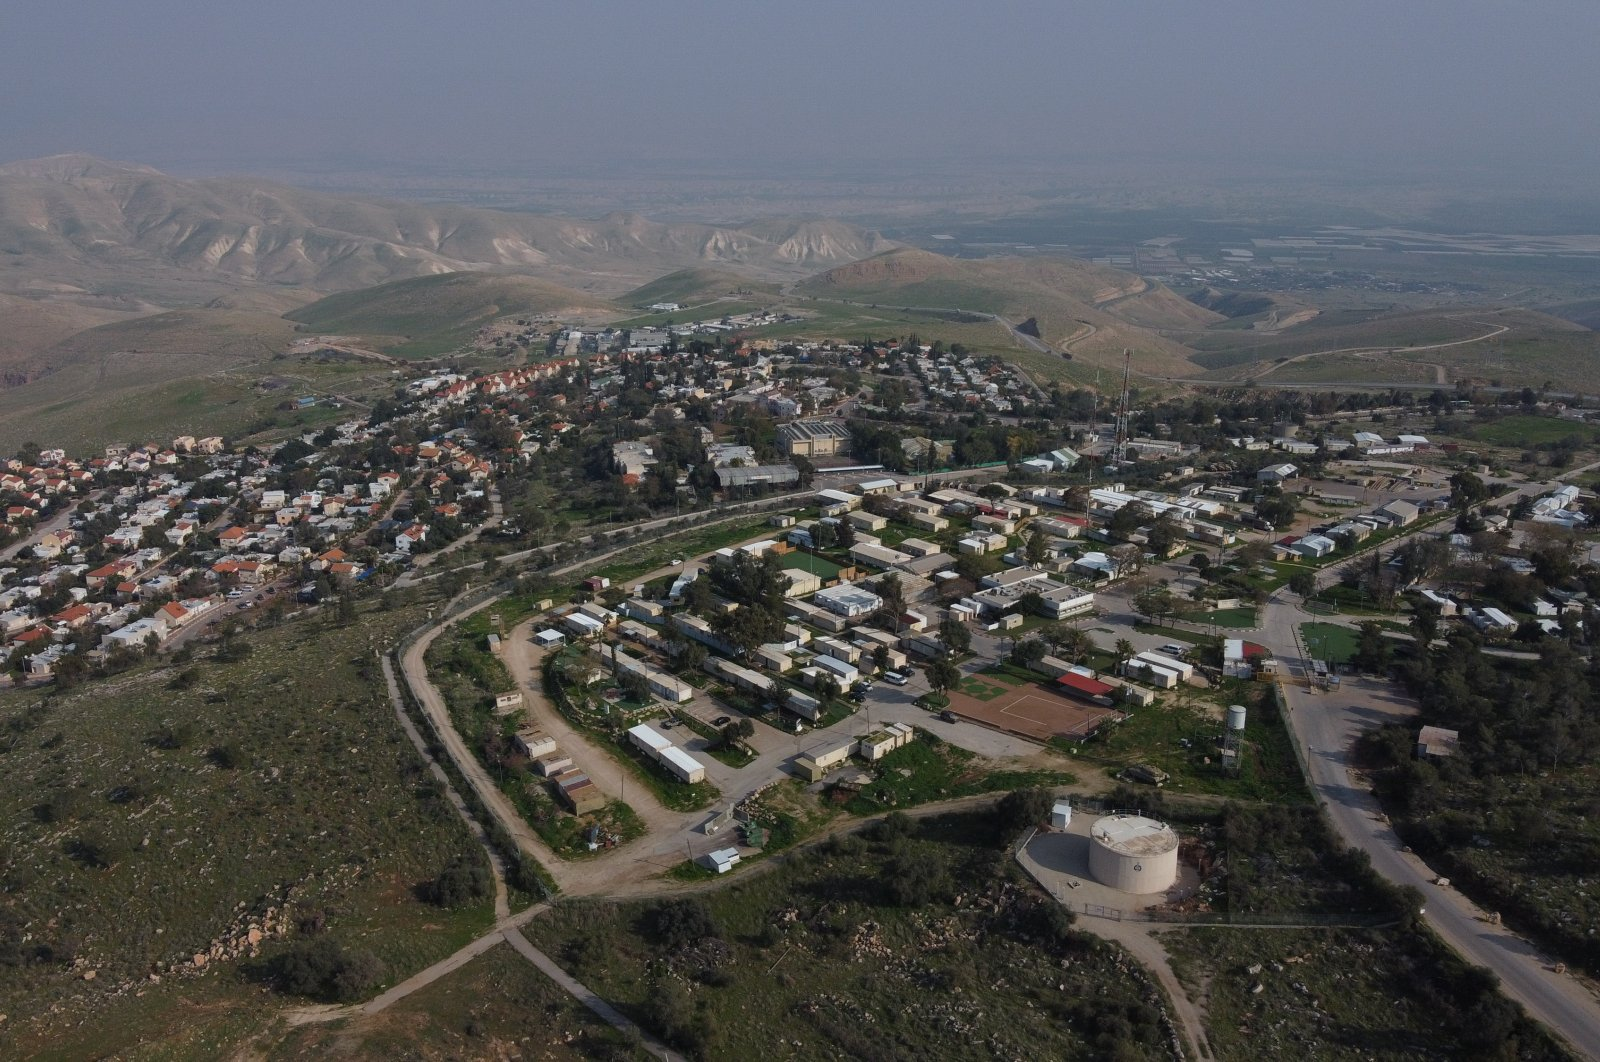 A view of the West Bank settlement of Ma'ale Efraim on the hills of the Jordan Valley, Feb. 18, 2020. (AP Photo)